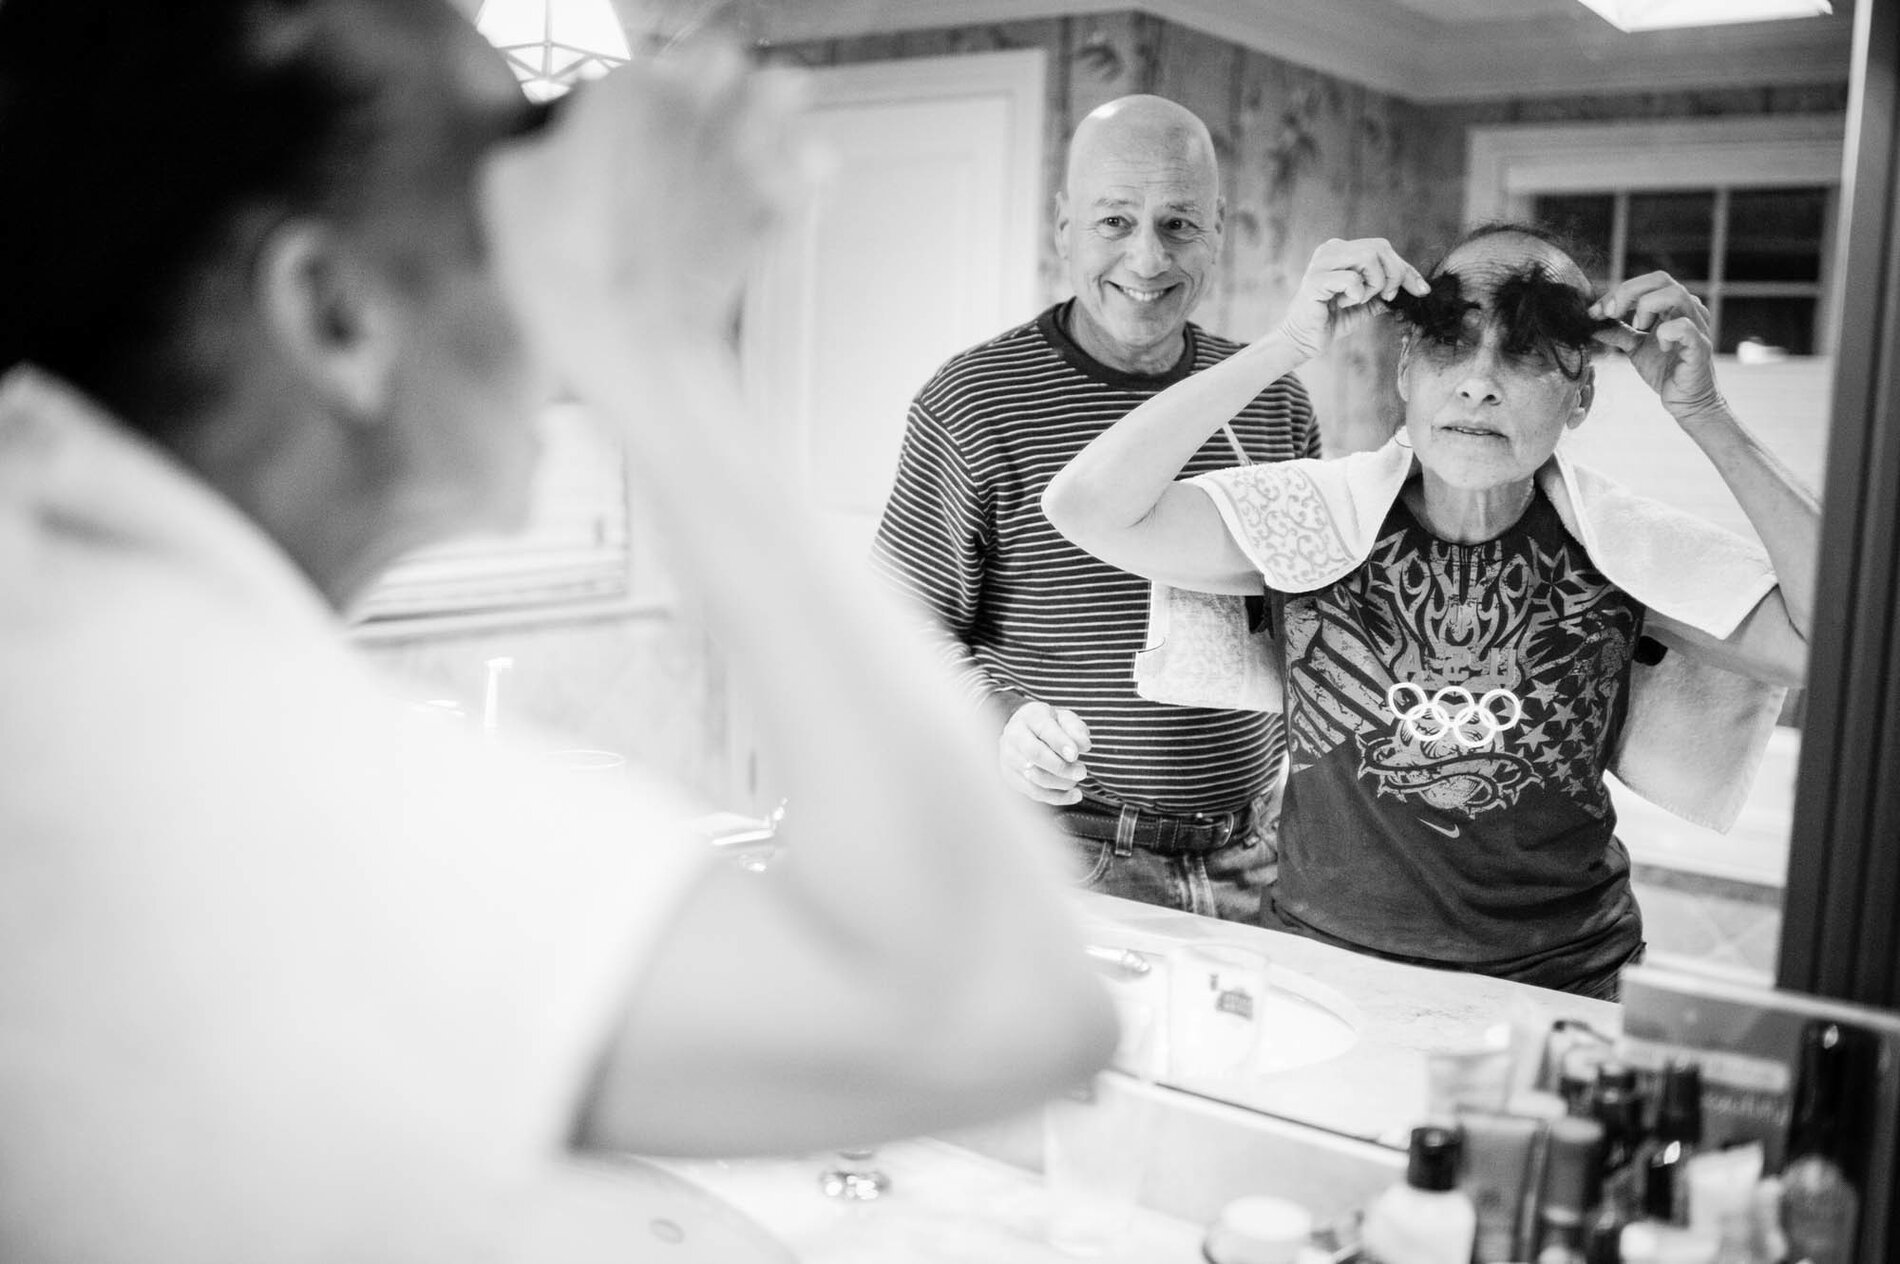 Late one evening, Dad cut Mom's hair, knowing that it would start falling out on its own in the coming weeks as a side effect from the chemotherapy. Mom turned the shorn locks into eyebrows.     (Nancy Borowick)